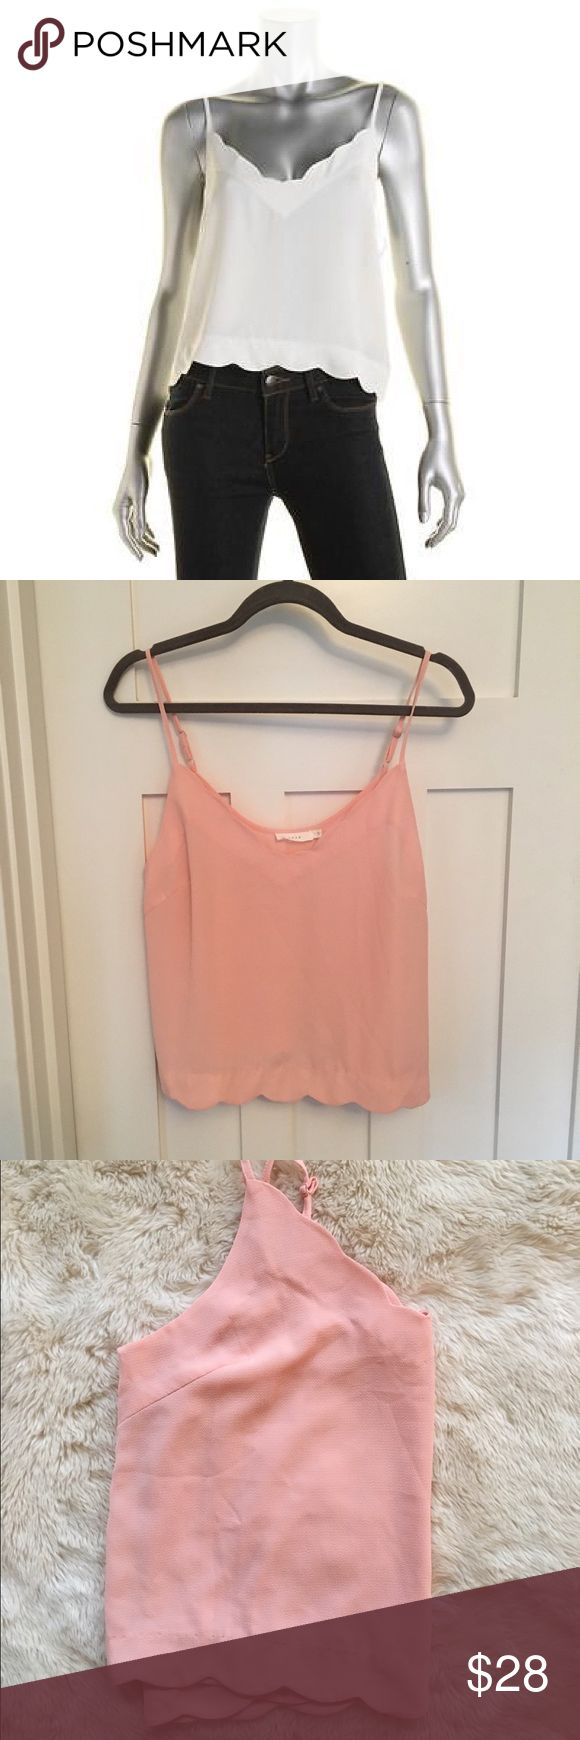 """Lush Pink Crepe Crop Top Adorable Light Pink Crepe crop top by Lush from Nordstrom. Scalloped hem and adjustable straps. NEVER WORN, excellent condition! 95% polyester 5% elasthanne. *note that stock photos are not actual color. Length (from where strap connects to bottom hem): 17.5"""" Bust (arm pit to arm pit): 20"""" Nordstrom Tops Crop Tops"""